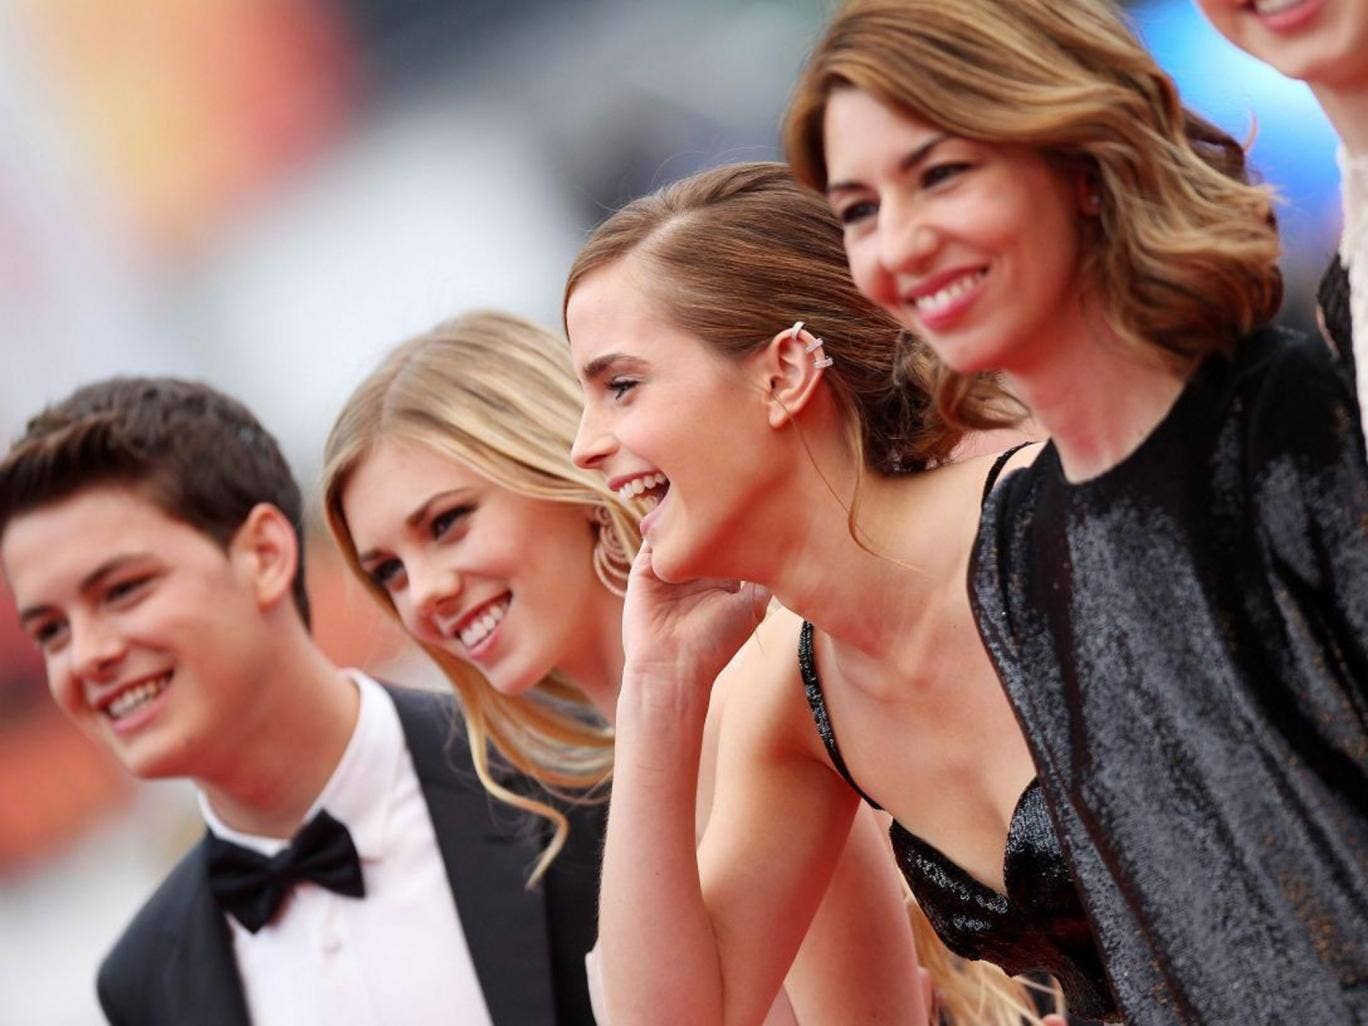 Sofia Coppola (right) with Emma Watson (third left) at the premiere of 'The Bling Ring' in Cannes